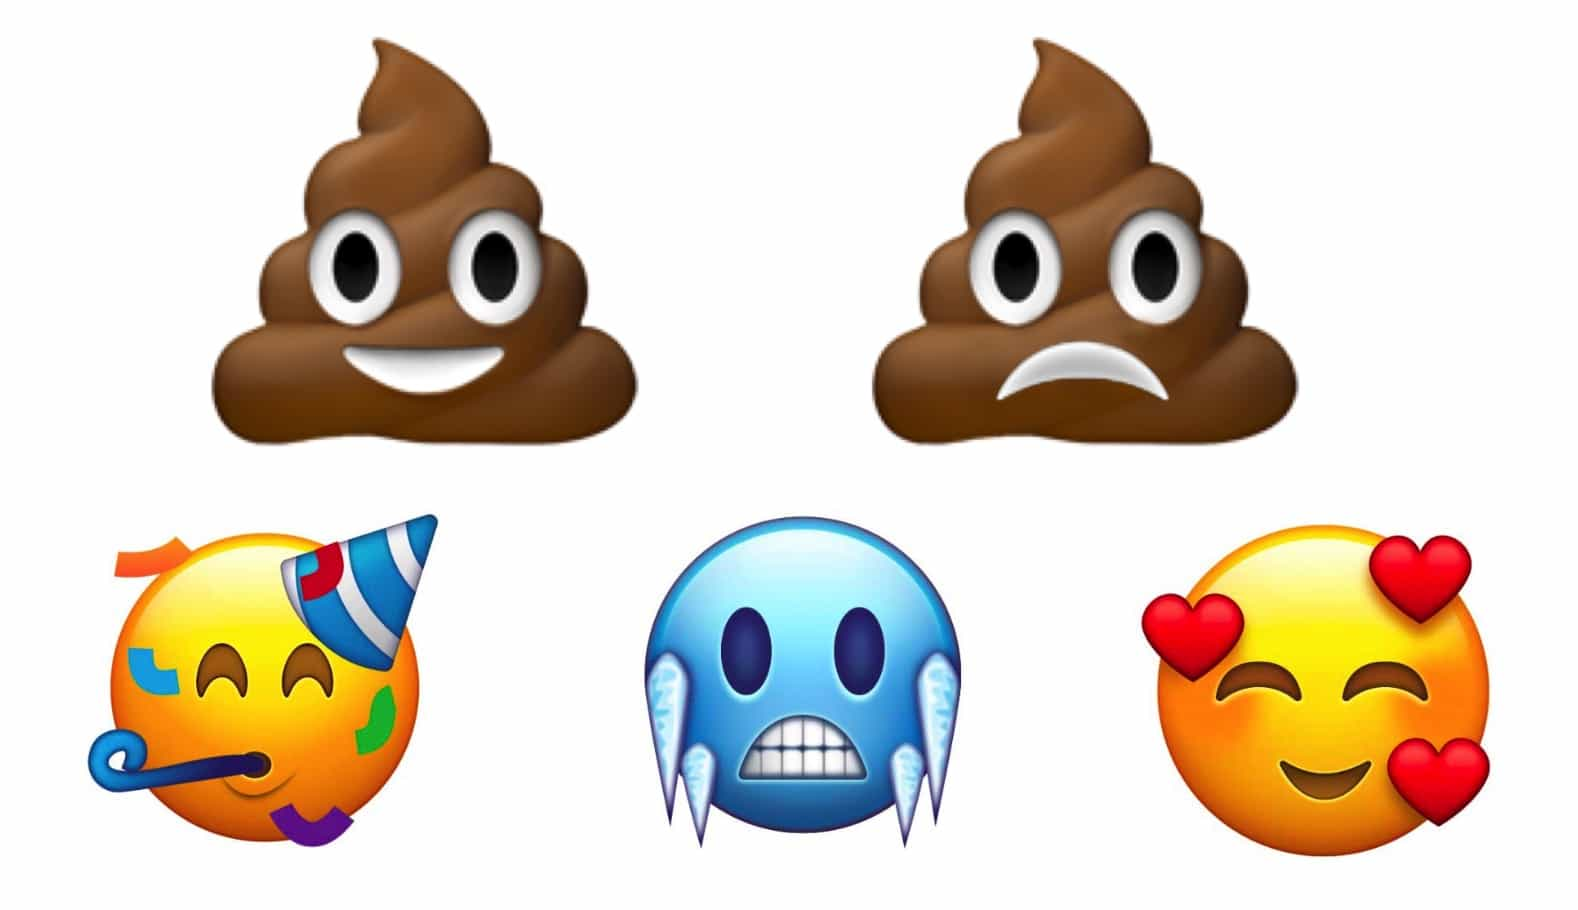 Proposed new emojis for 2018